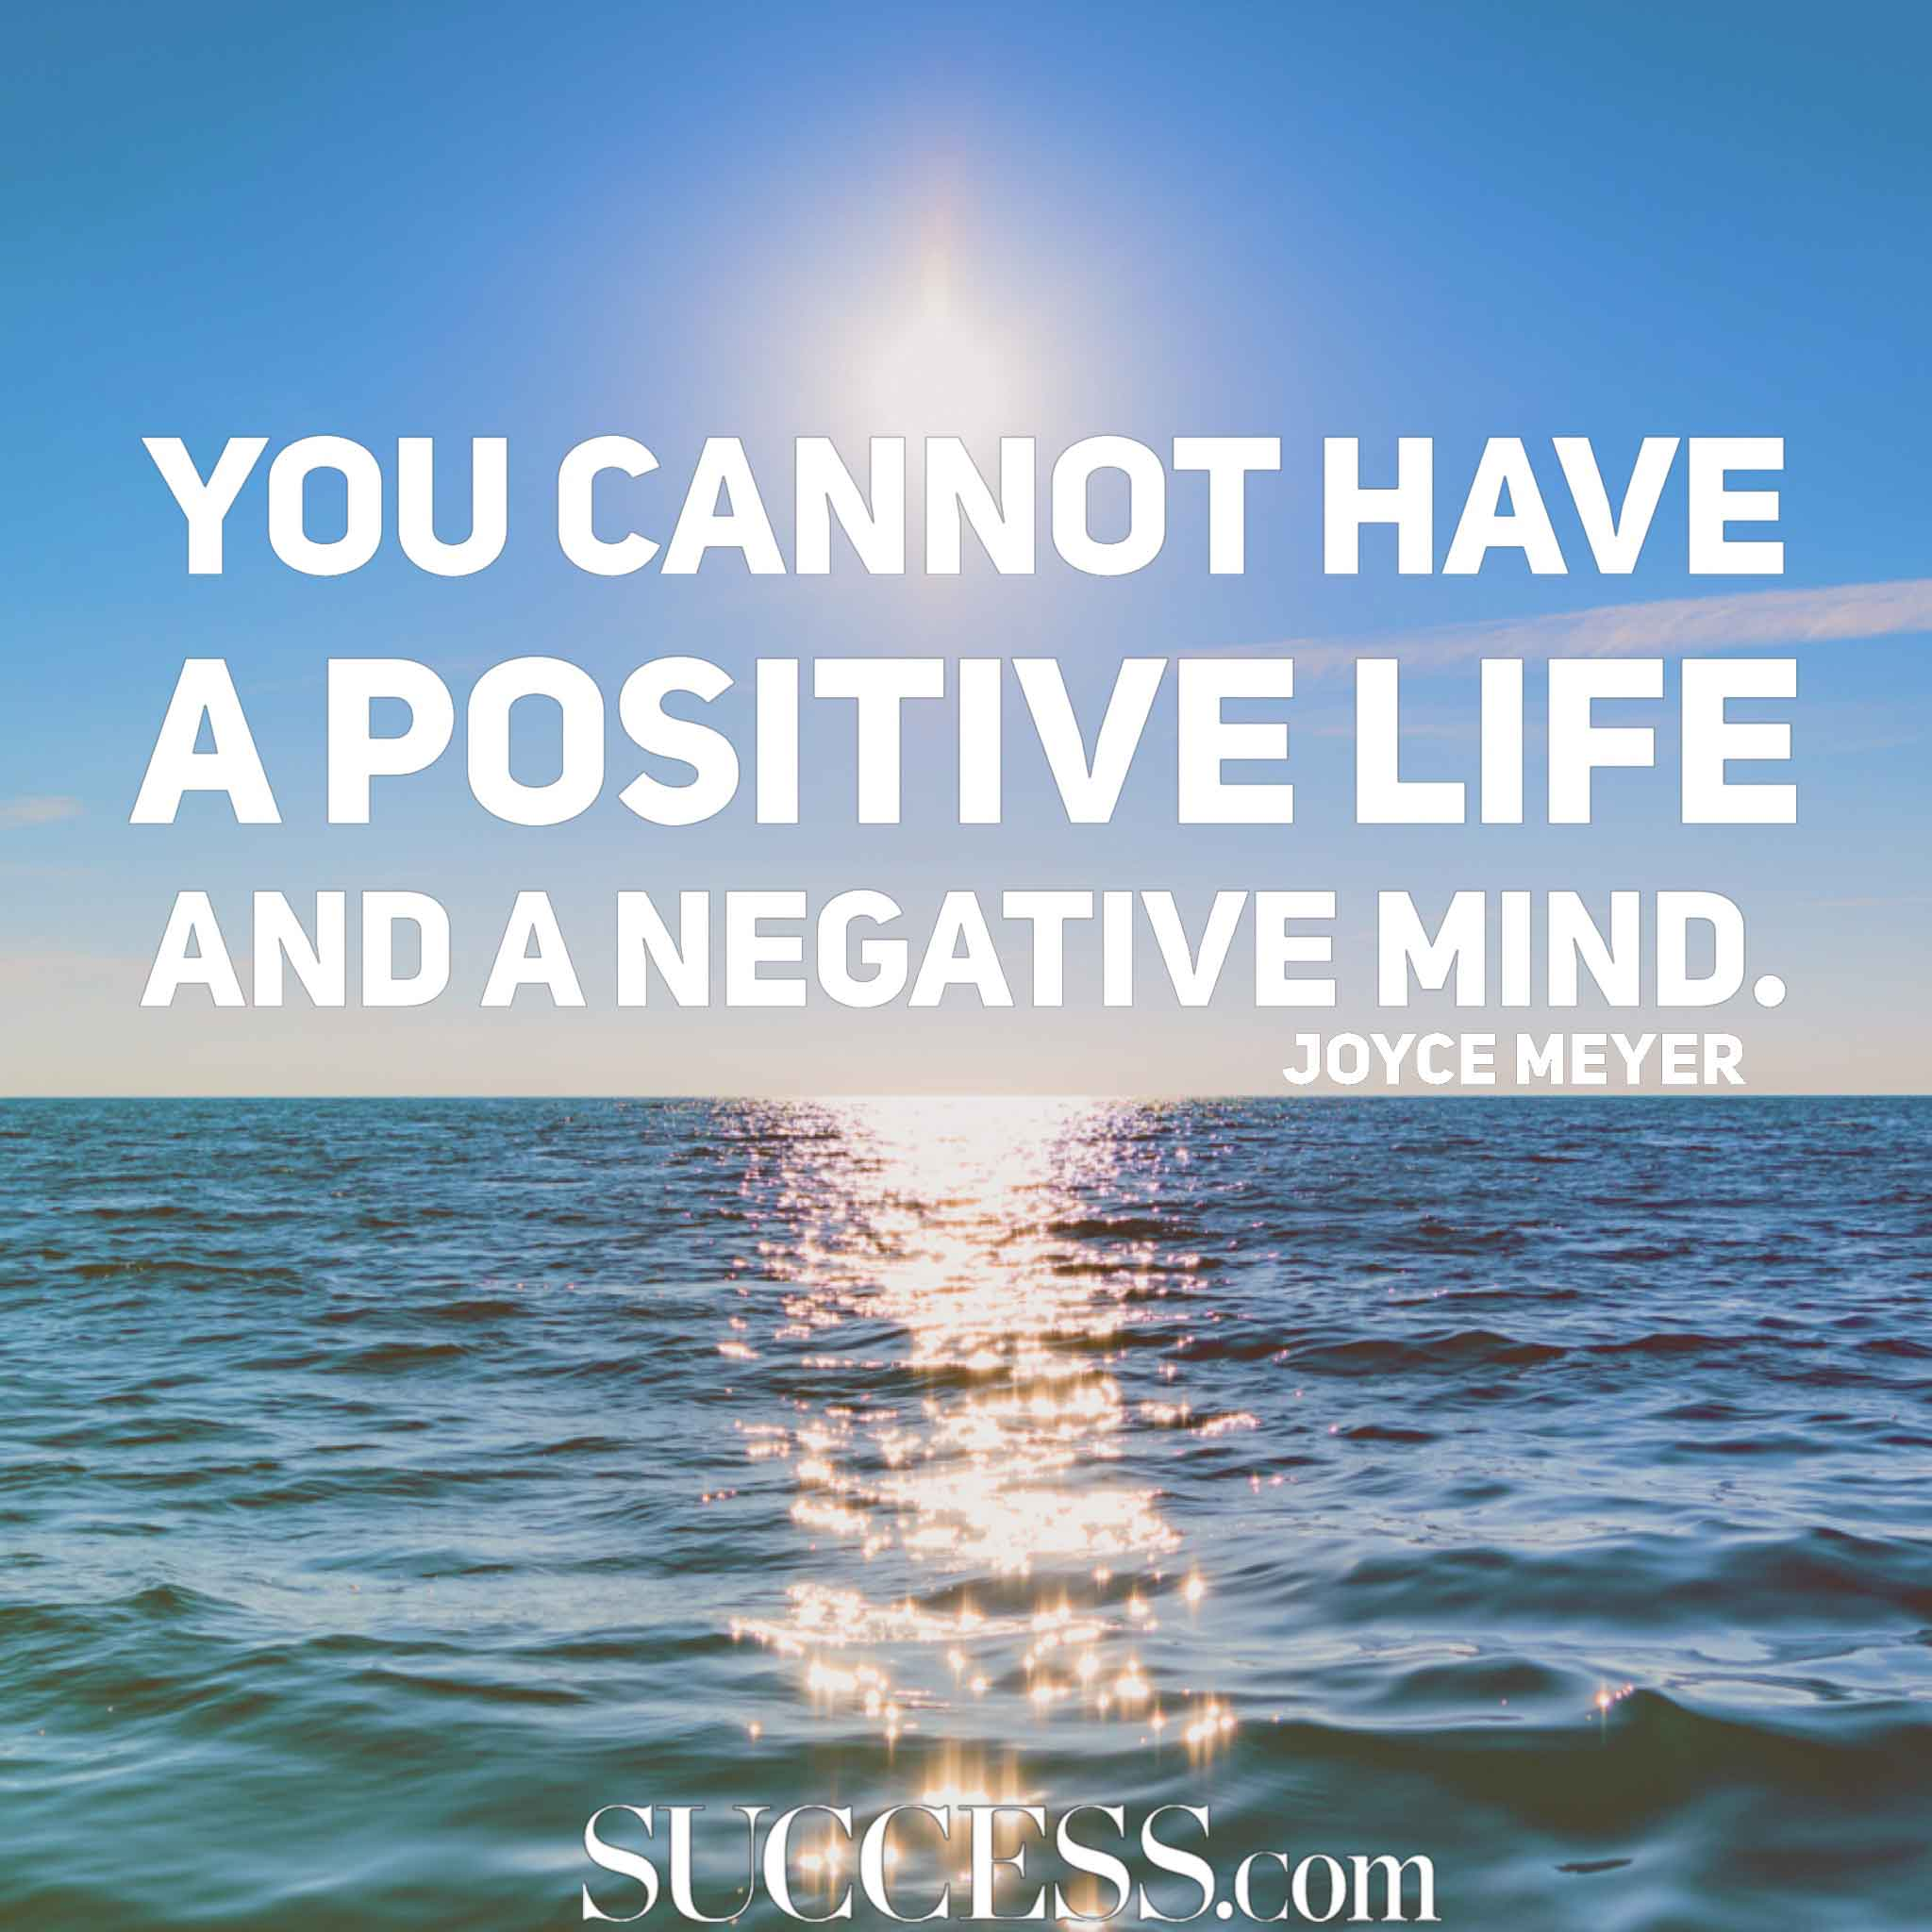 Quotes Of Positivity   13 Quotes For A Positive Life